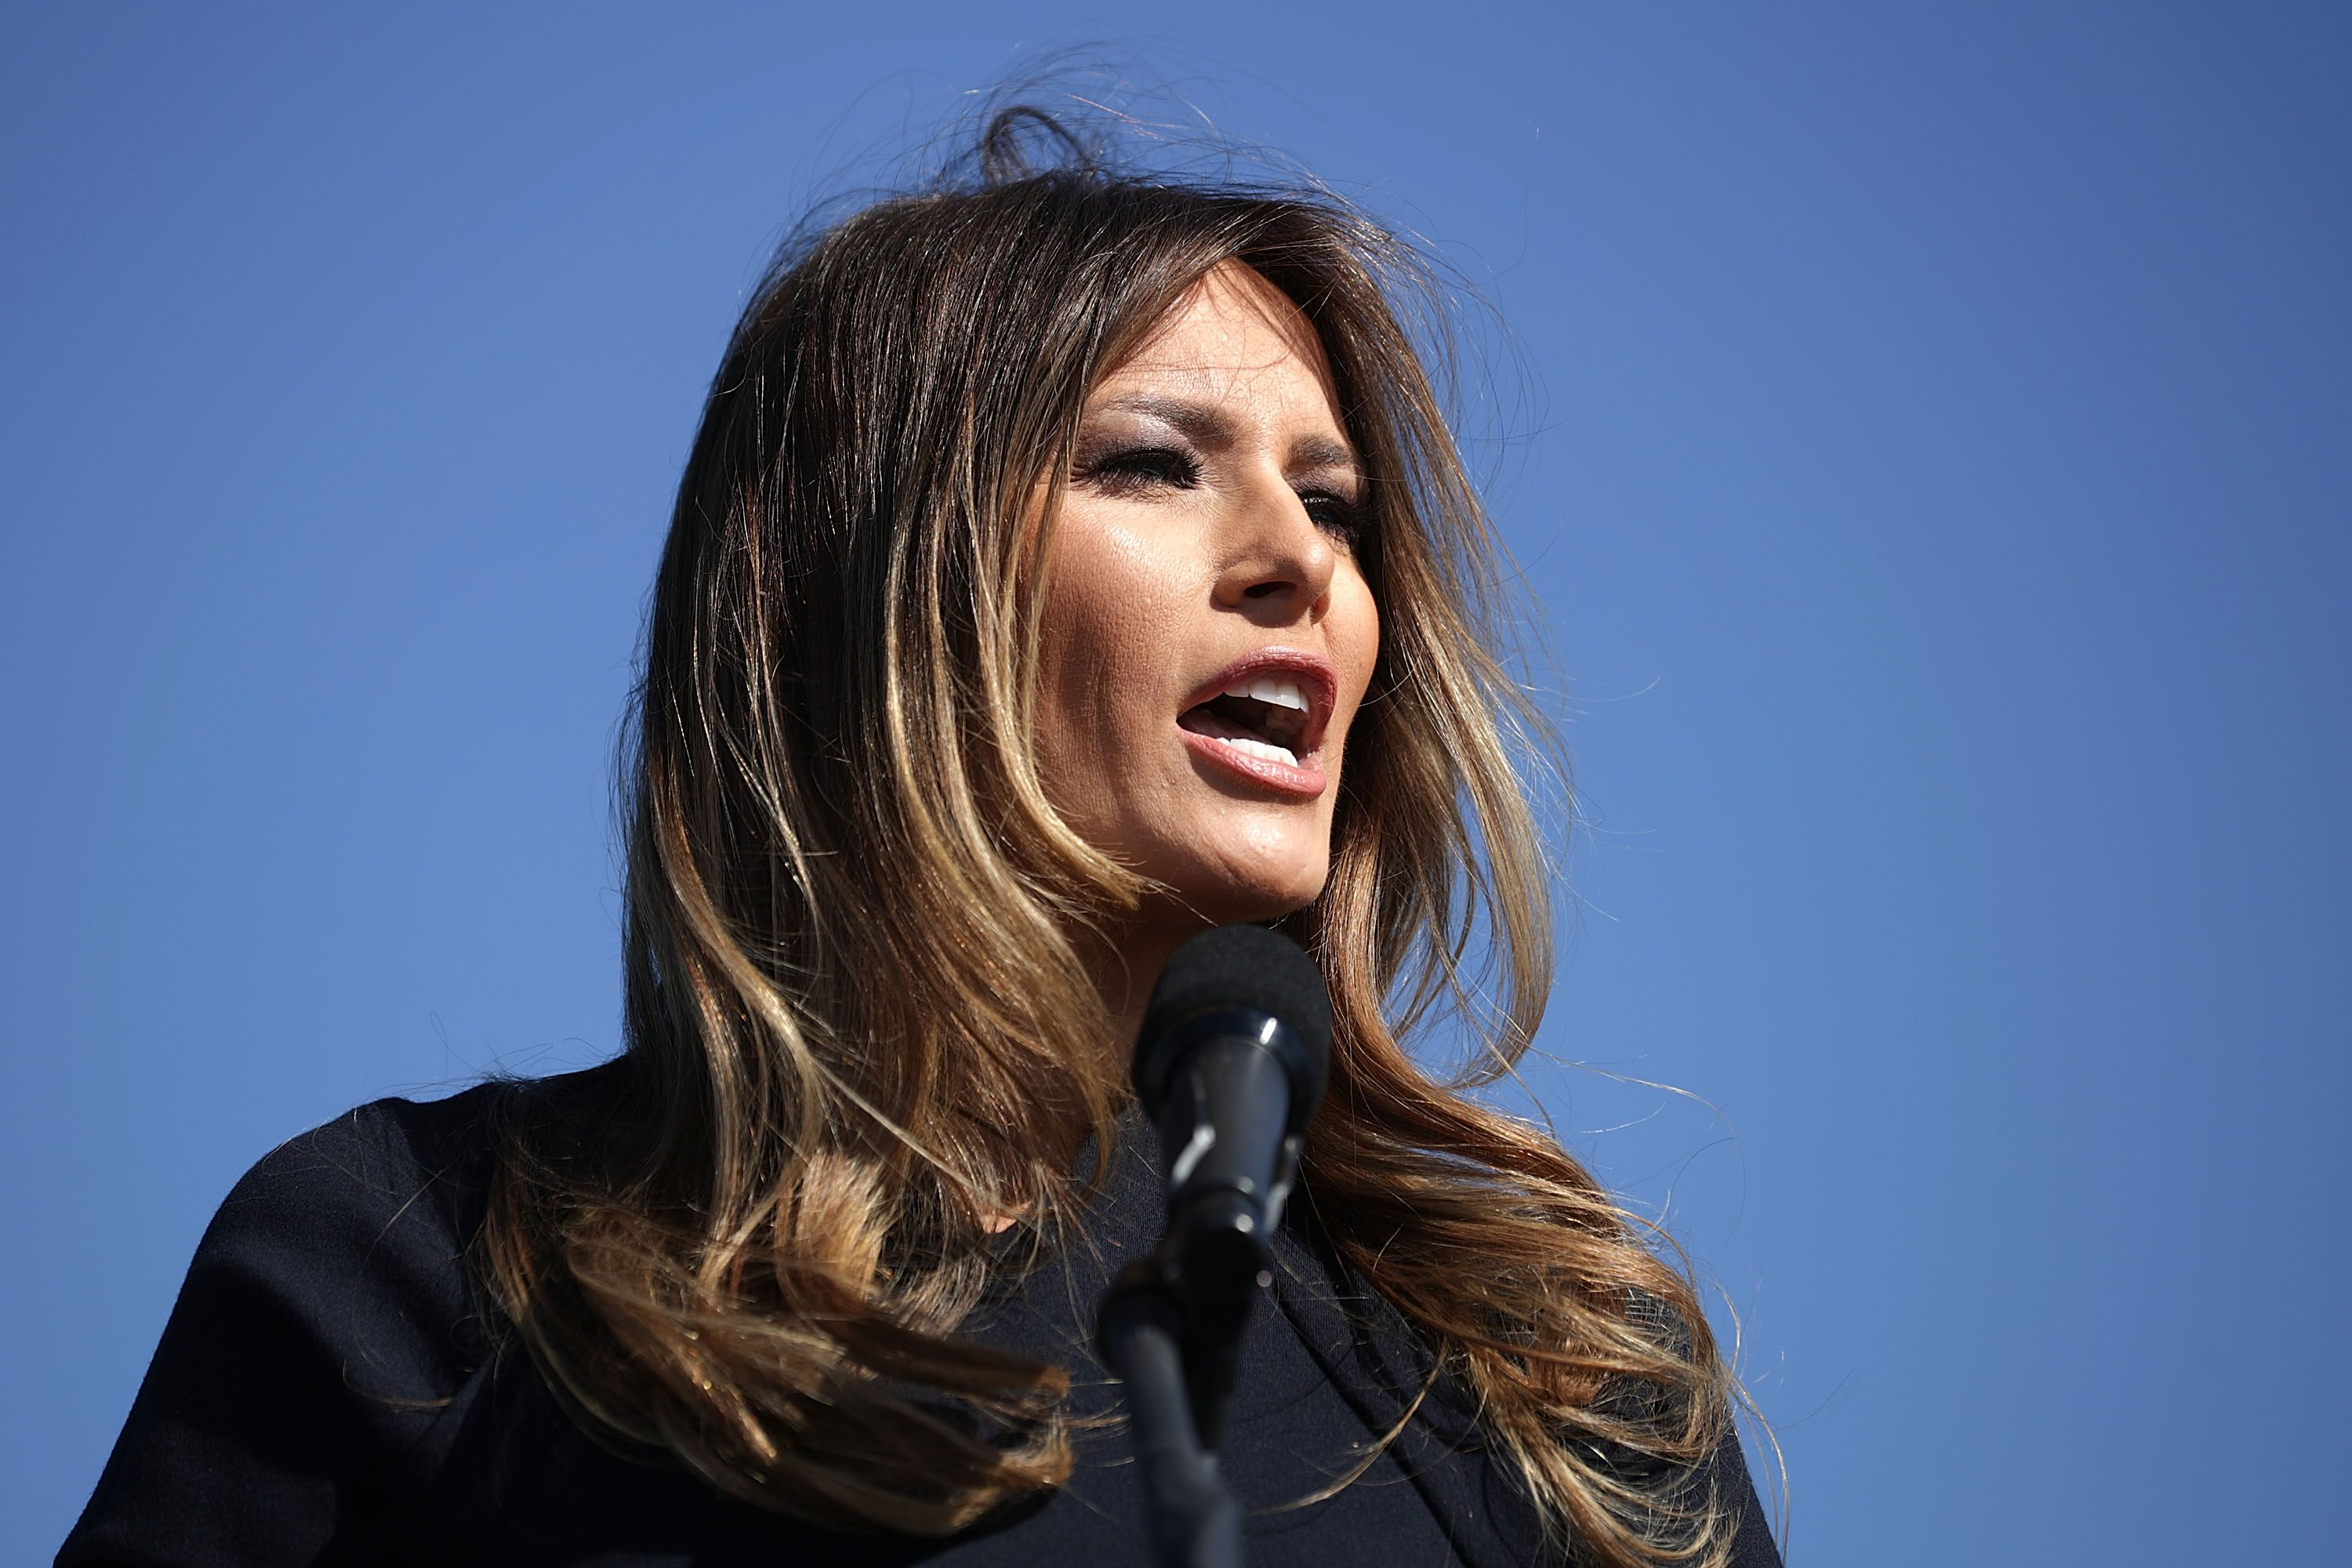 Melania Trump, wife of Republican presidential nominee Donald Trump, introduces her husband during a campaign rally the Air Wilmington Hangar located at Wilmington International Airport, North Carolina | Photo: Getty Images